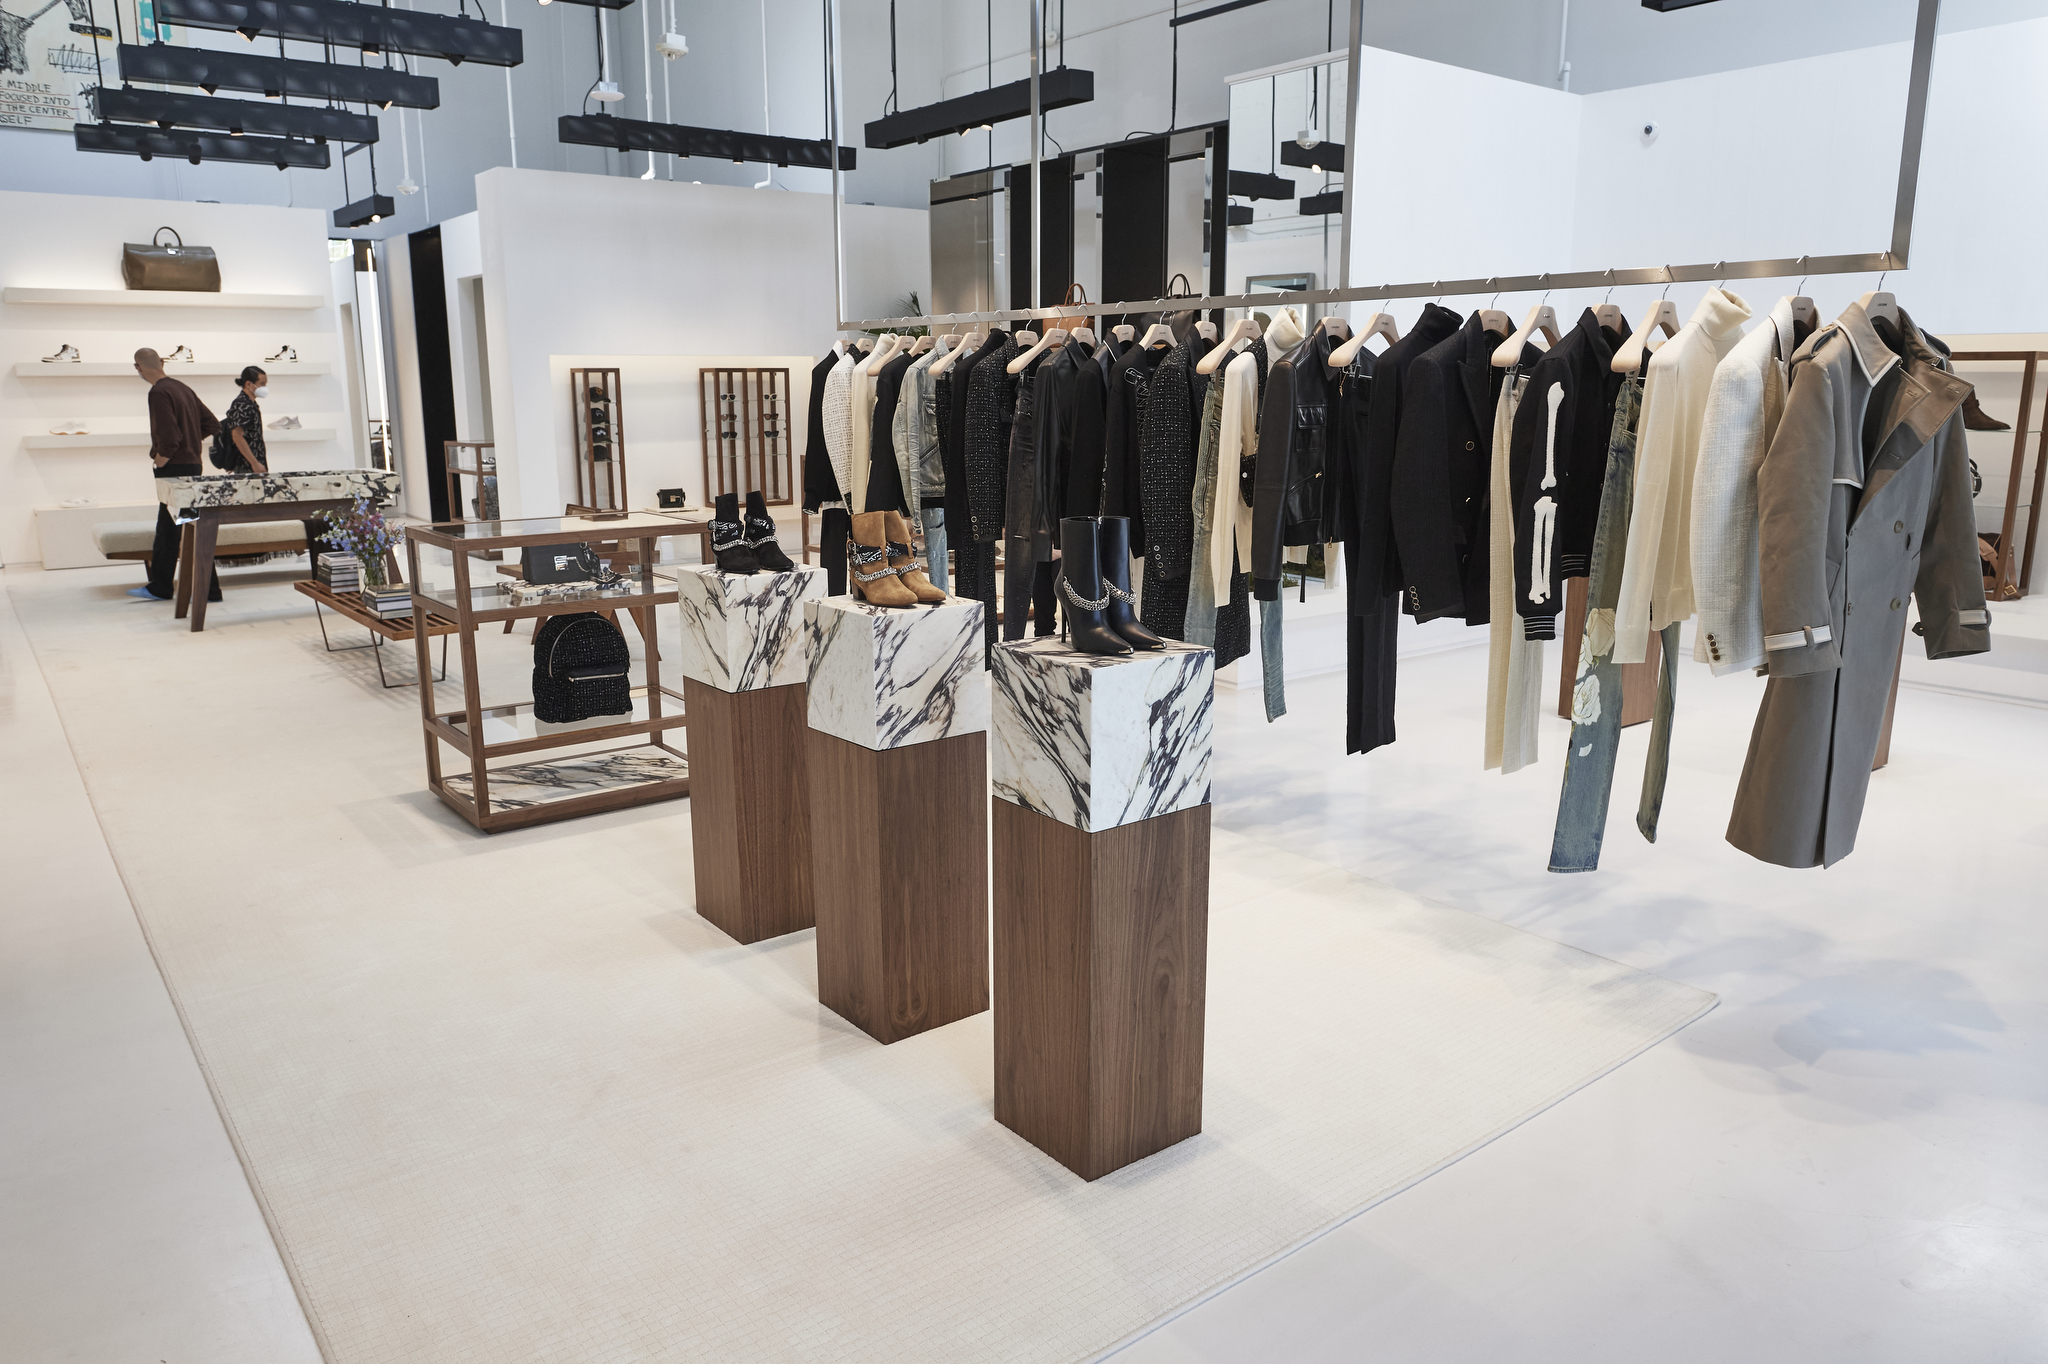 The interior of Amiri's flagship on Rodeo Drive.